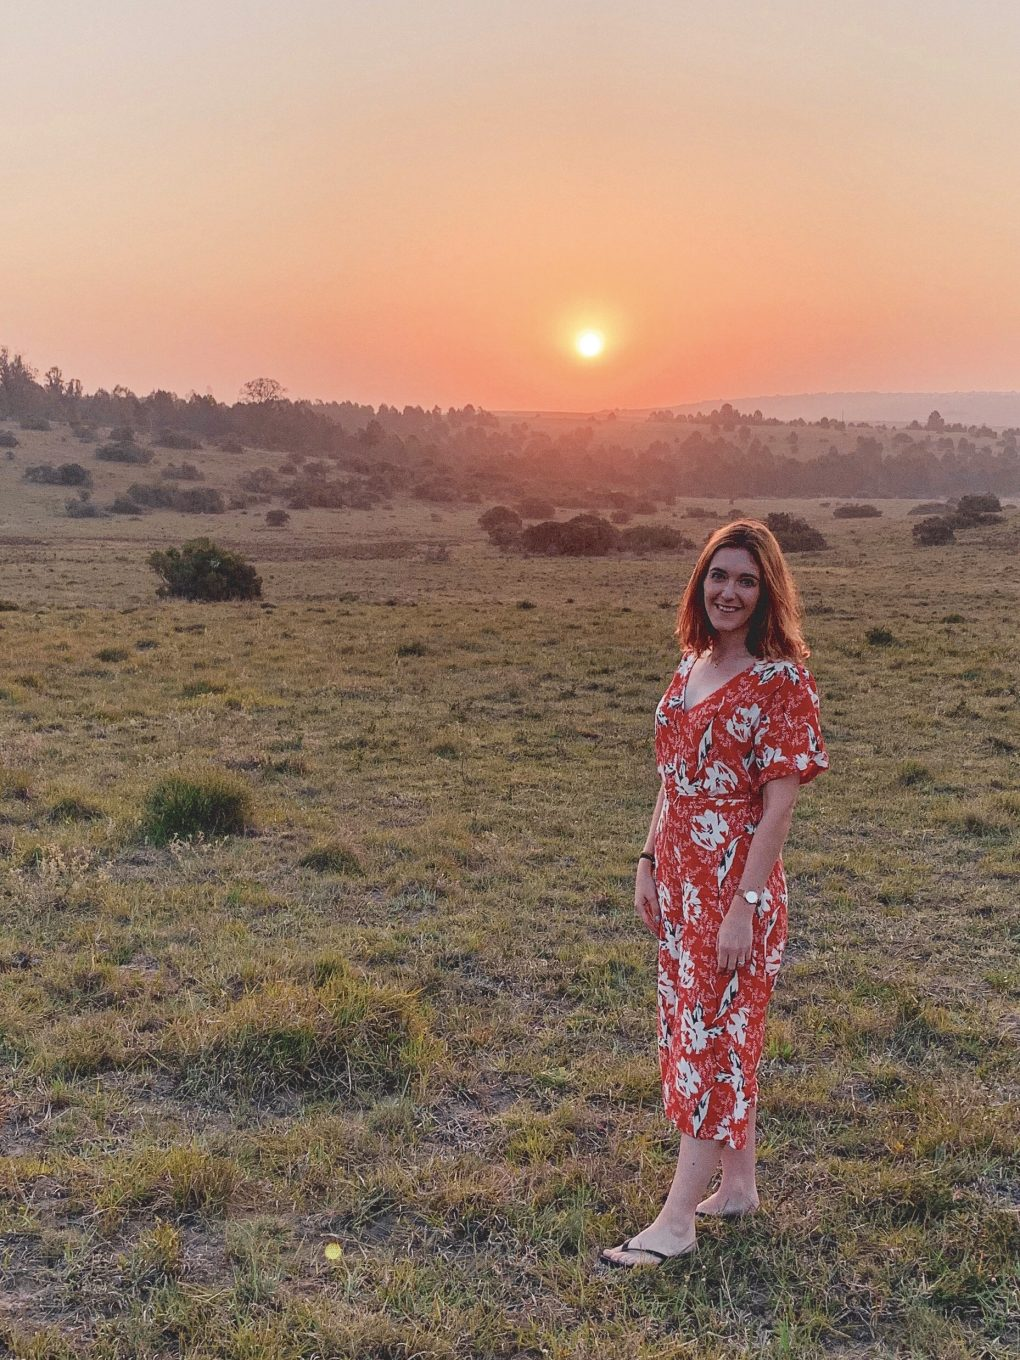 I'm standing in the National Park wearing a red 3/4 length jumpsuit with flip flops smiling at the camera. The sun is setting in the background and there are zebra in the distance. Taken in South Africa.